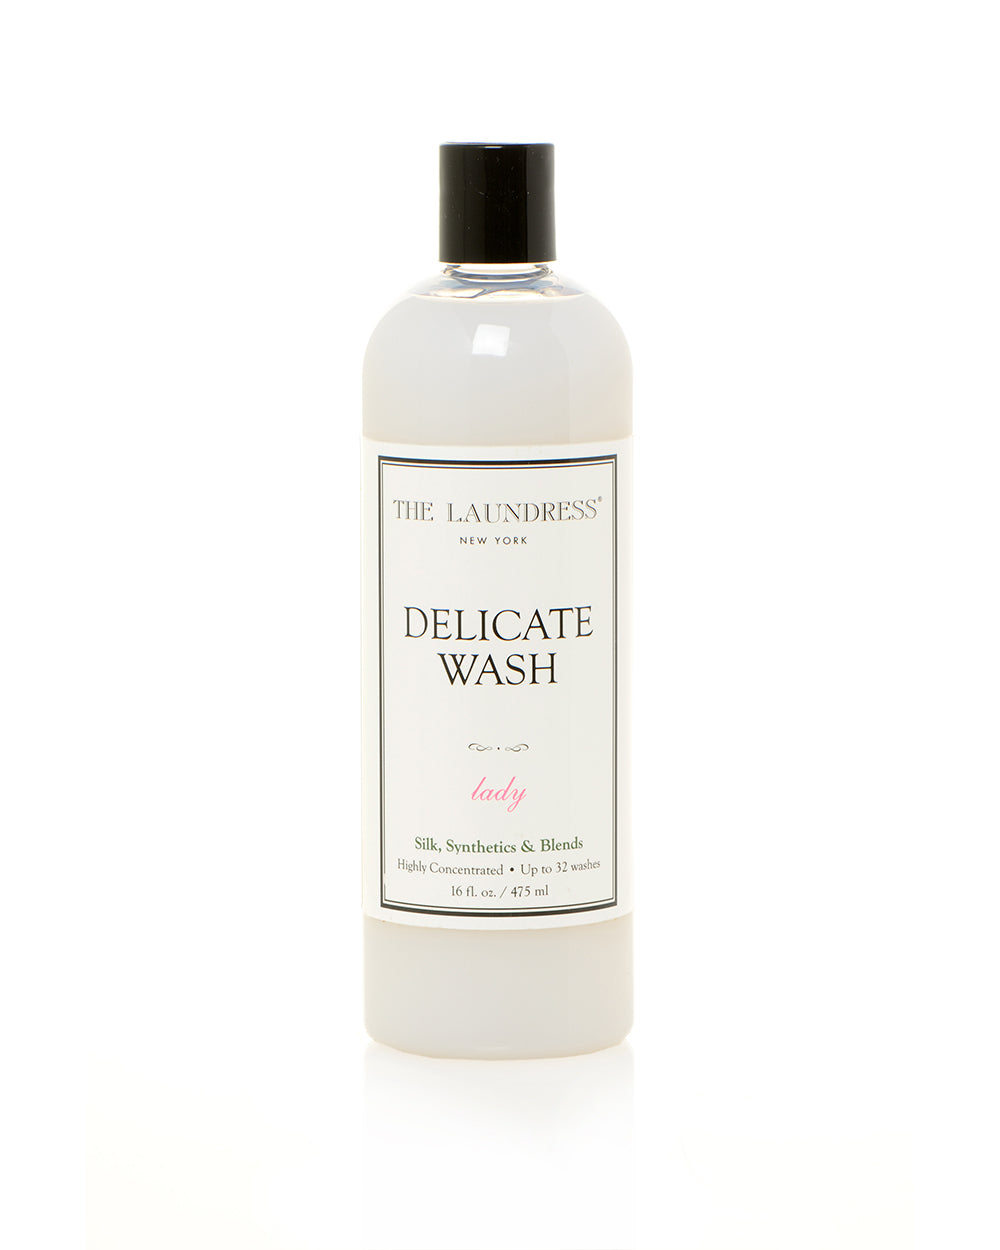 Lady Delicate Wash